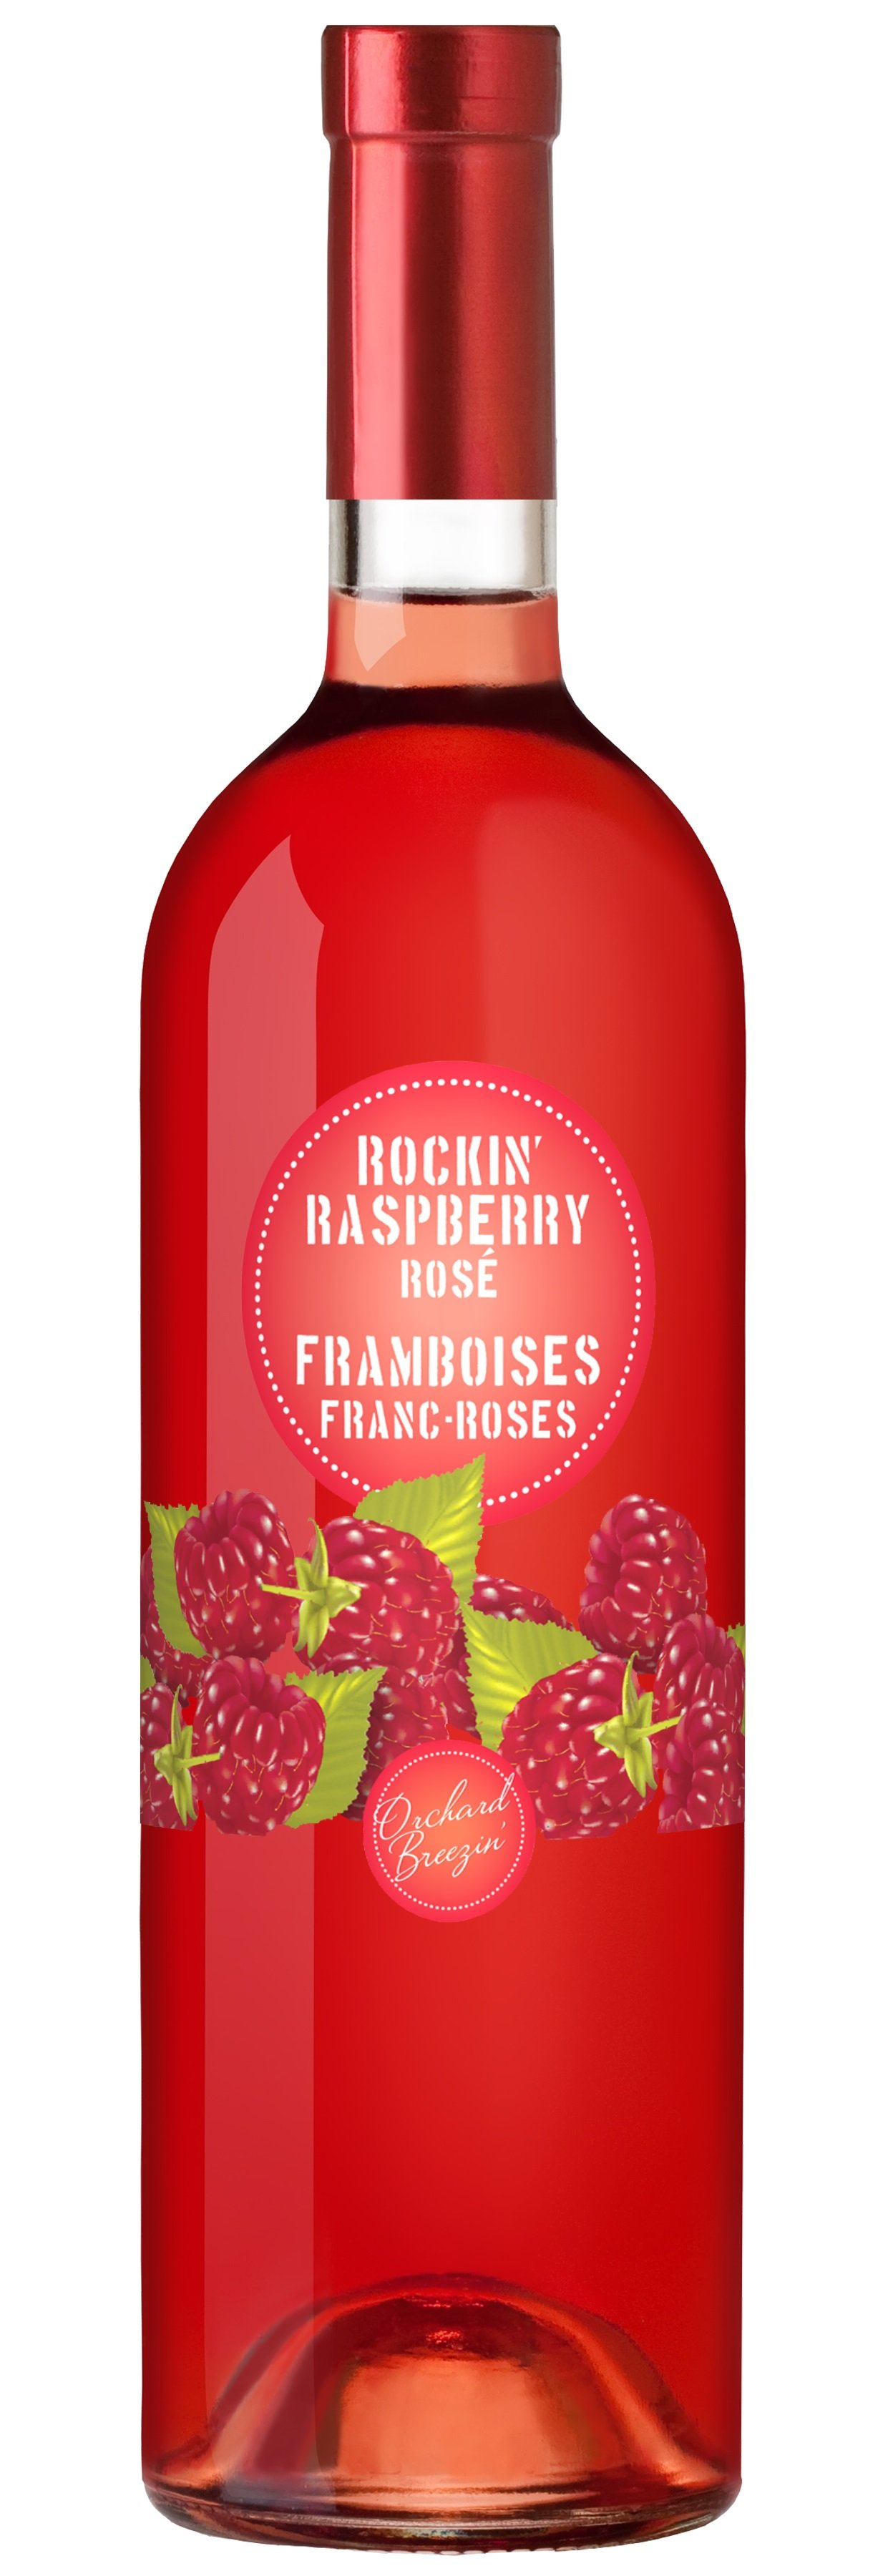 https://0901.nccdn.net/4_2/000/000/06b/a1b/OB_Bottle_RockinRasberryRose.jpg